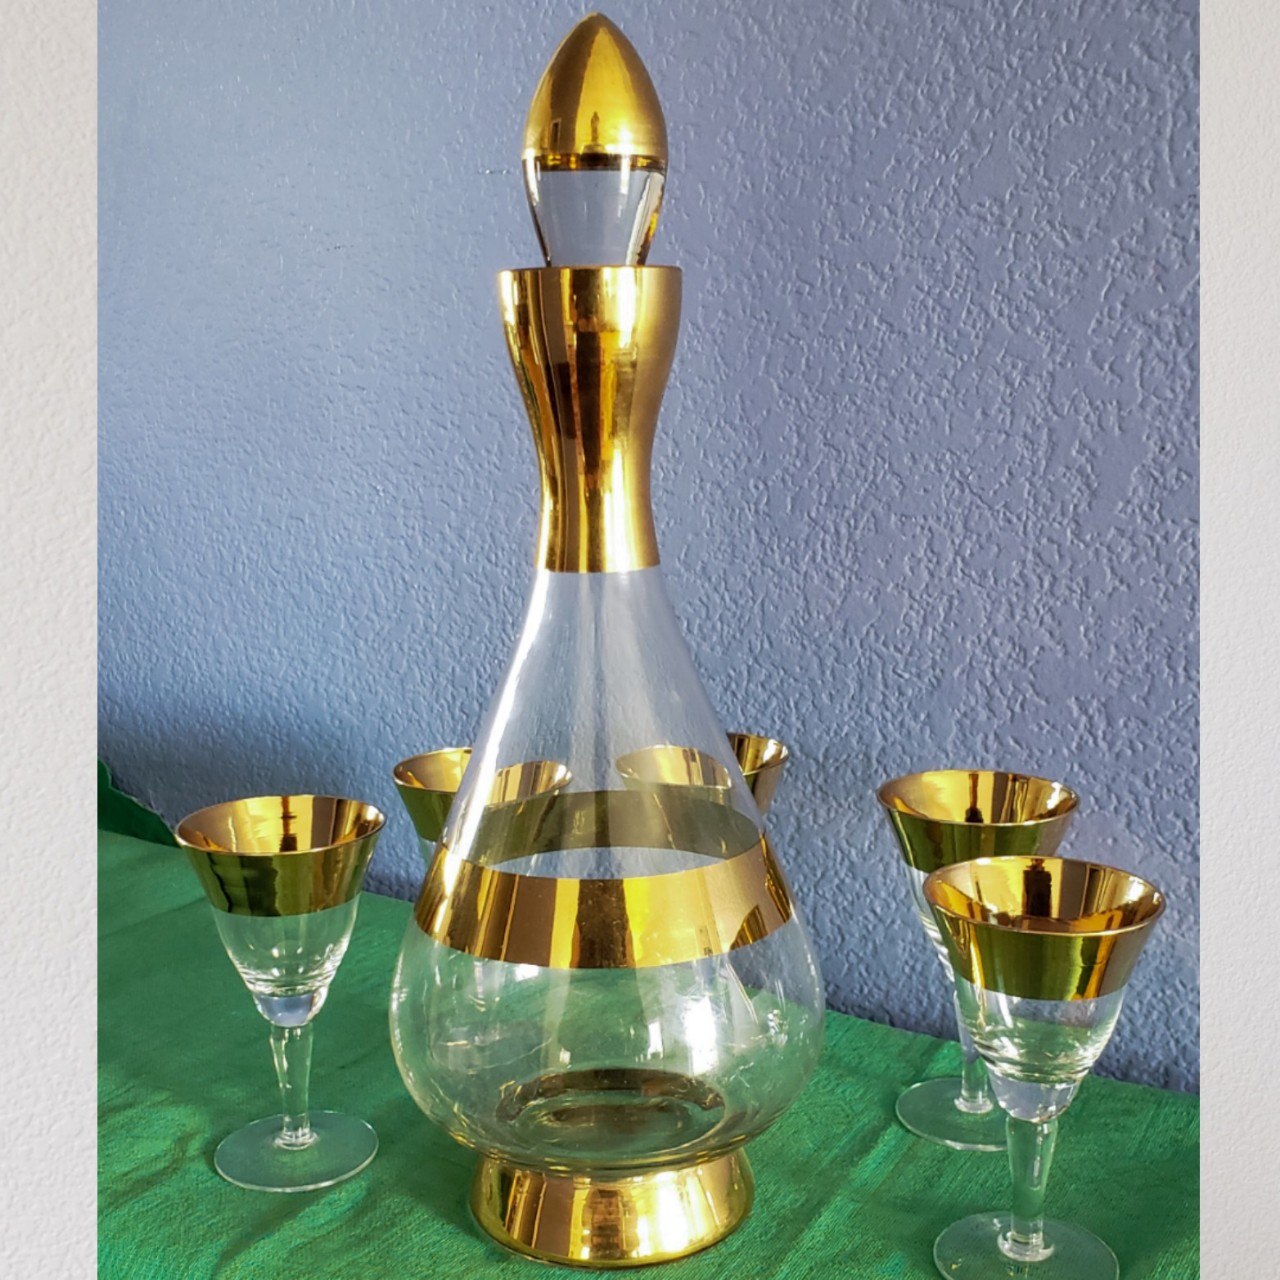 Product Image 1 - Midcentury Decanter and Glasses  Beautiful set